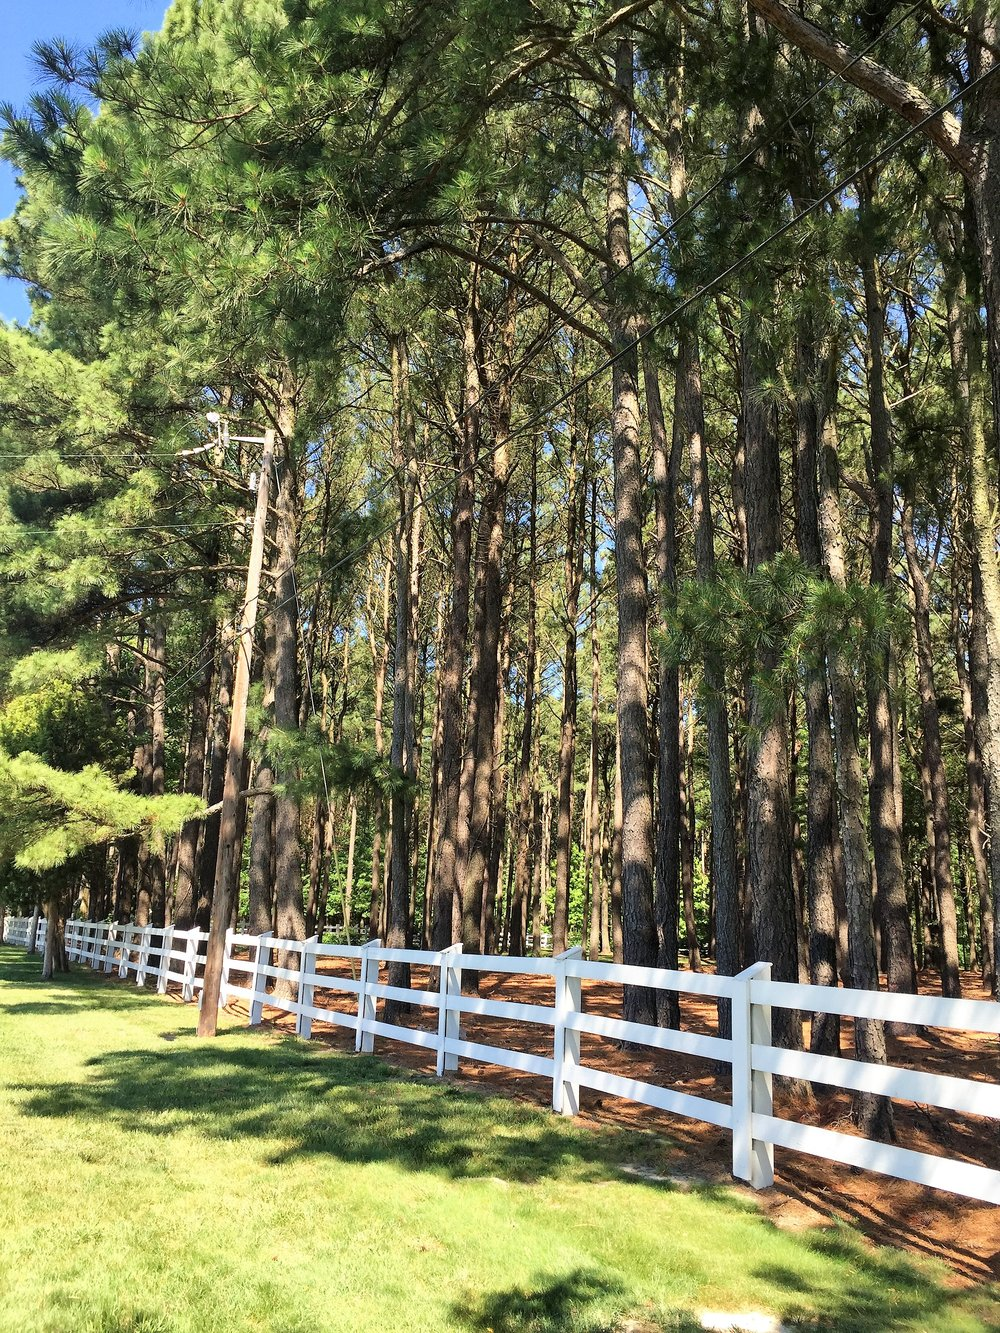 Walls of these tall, tall pine trees line the roadways of MD.